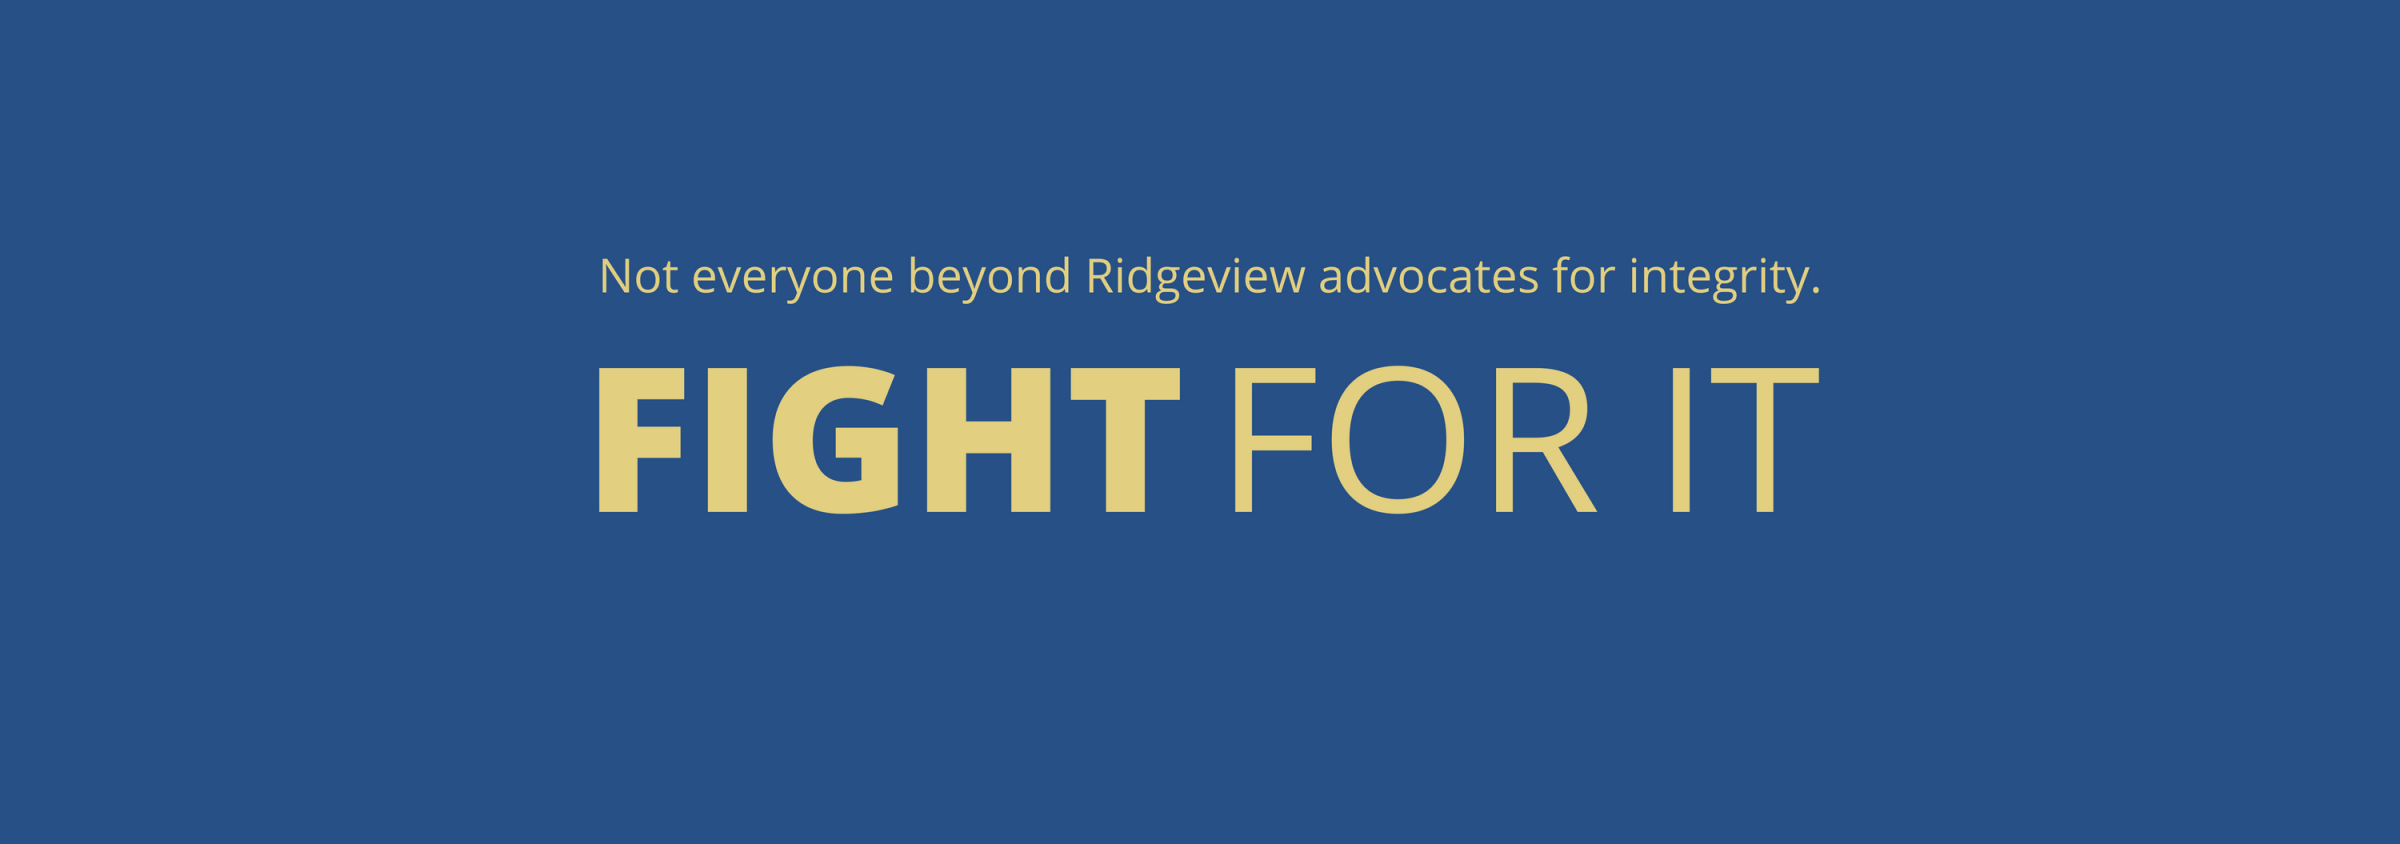 """""""Not Everyone beyond Ridgeview advocates for integrity. Fight for it."""" Against a blue background."""